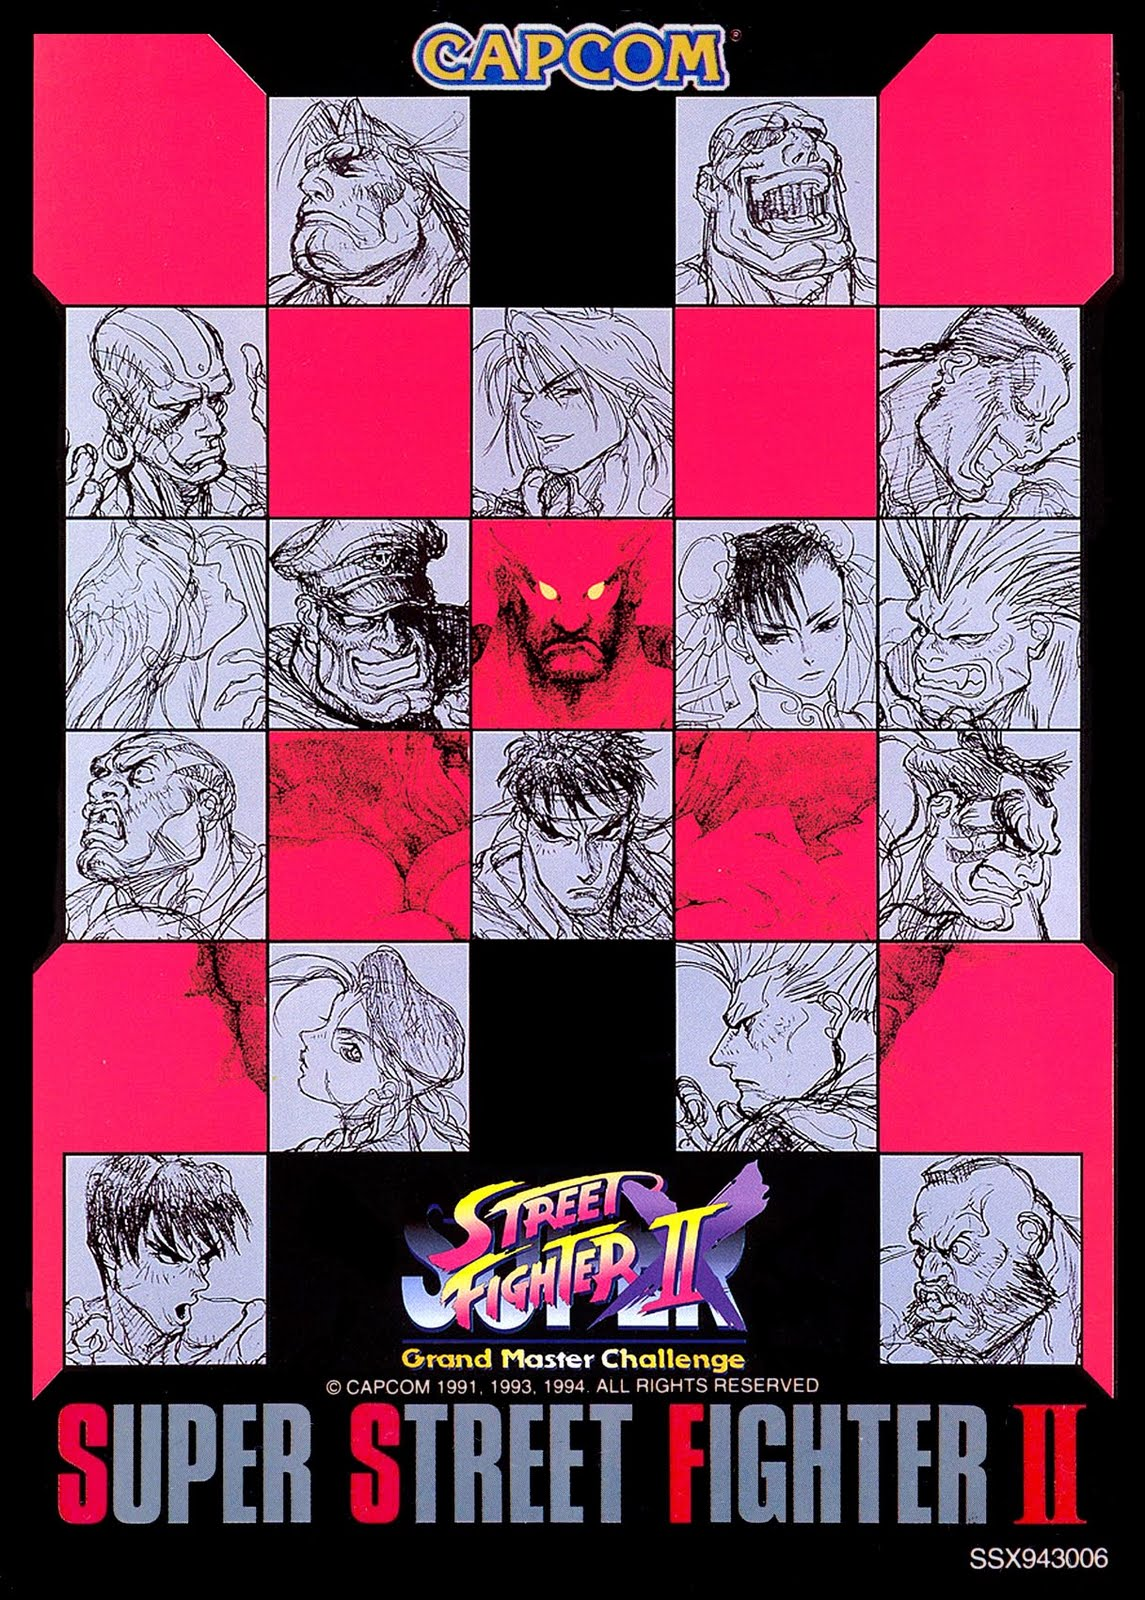 Steam Community :: Super Street Fighter 2 Turbo poster